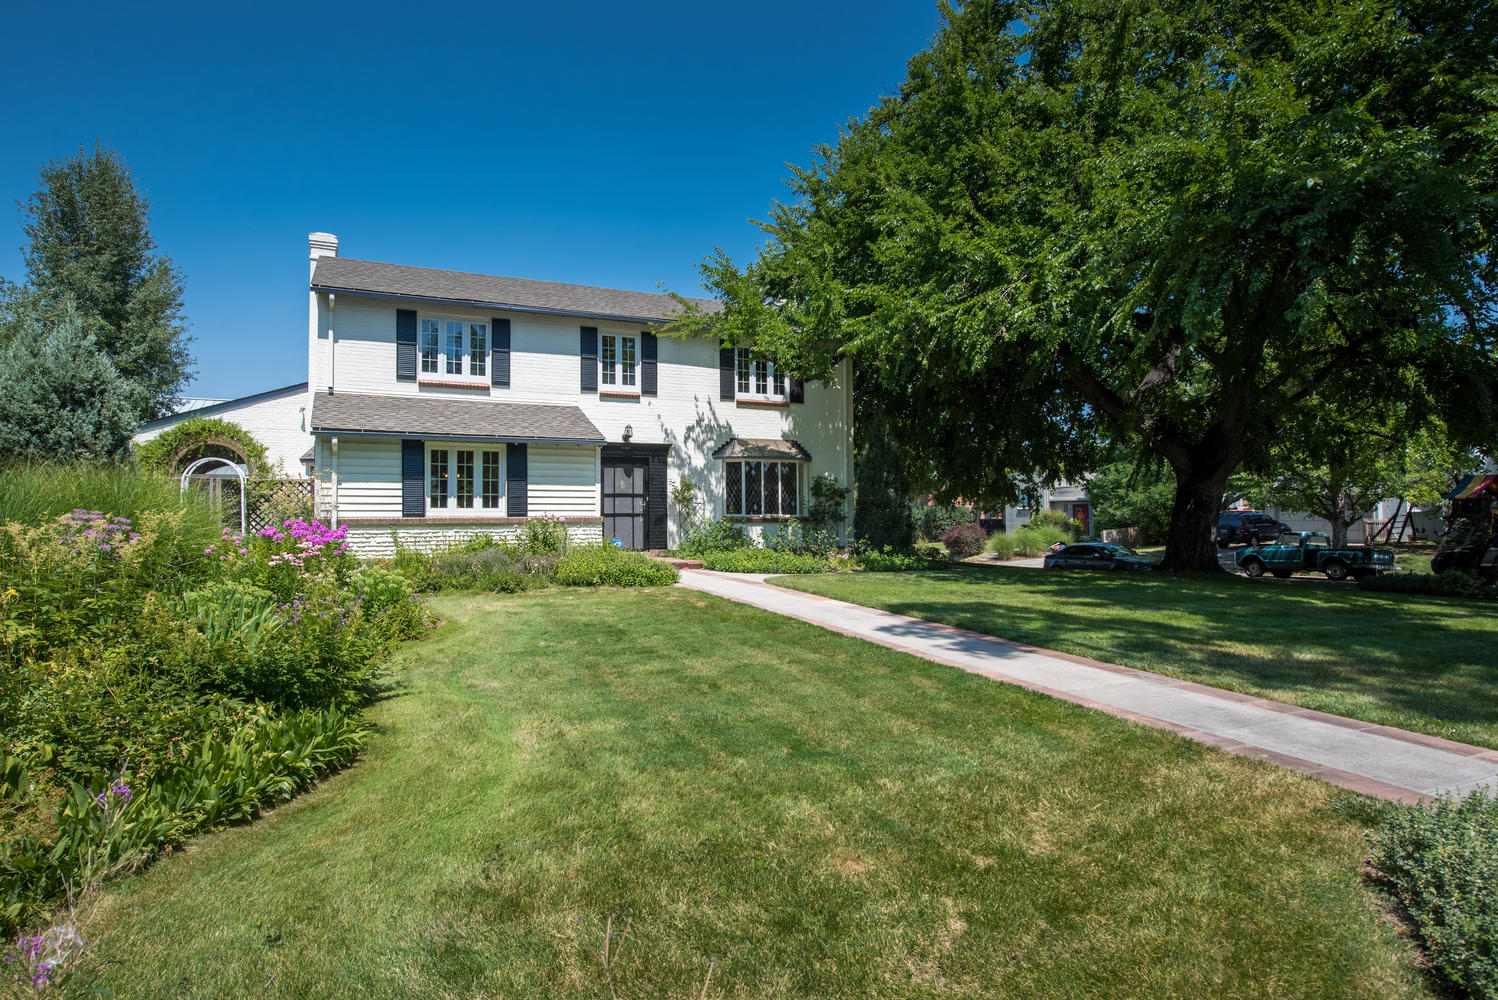 Single Family Home for Sale at Classic New England Style Colonial 5745 East 6th Avenue Parkway Denver, Colorado, 80220 United States